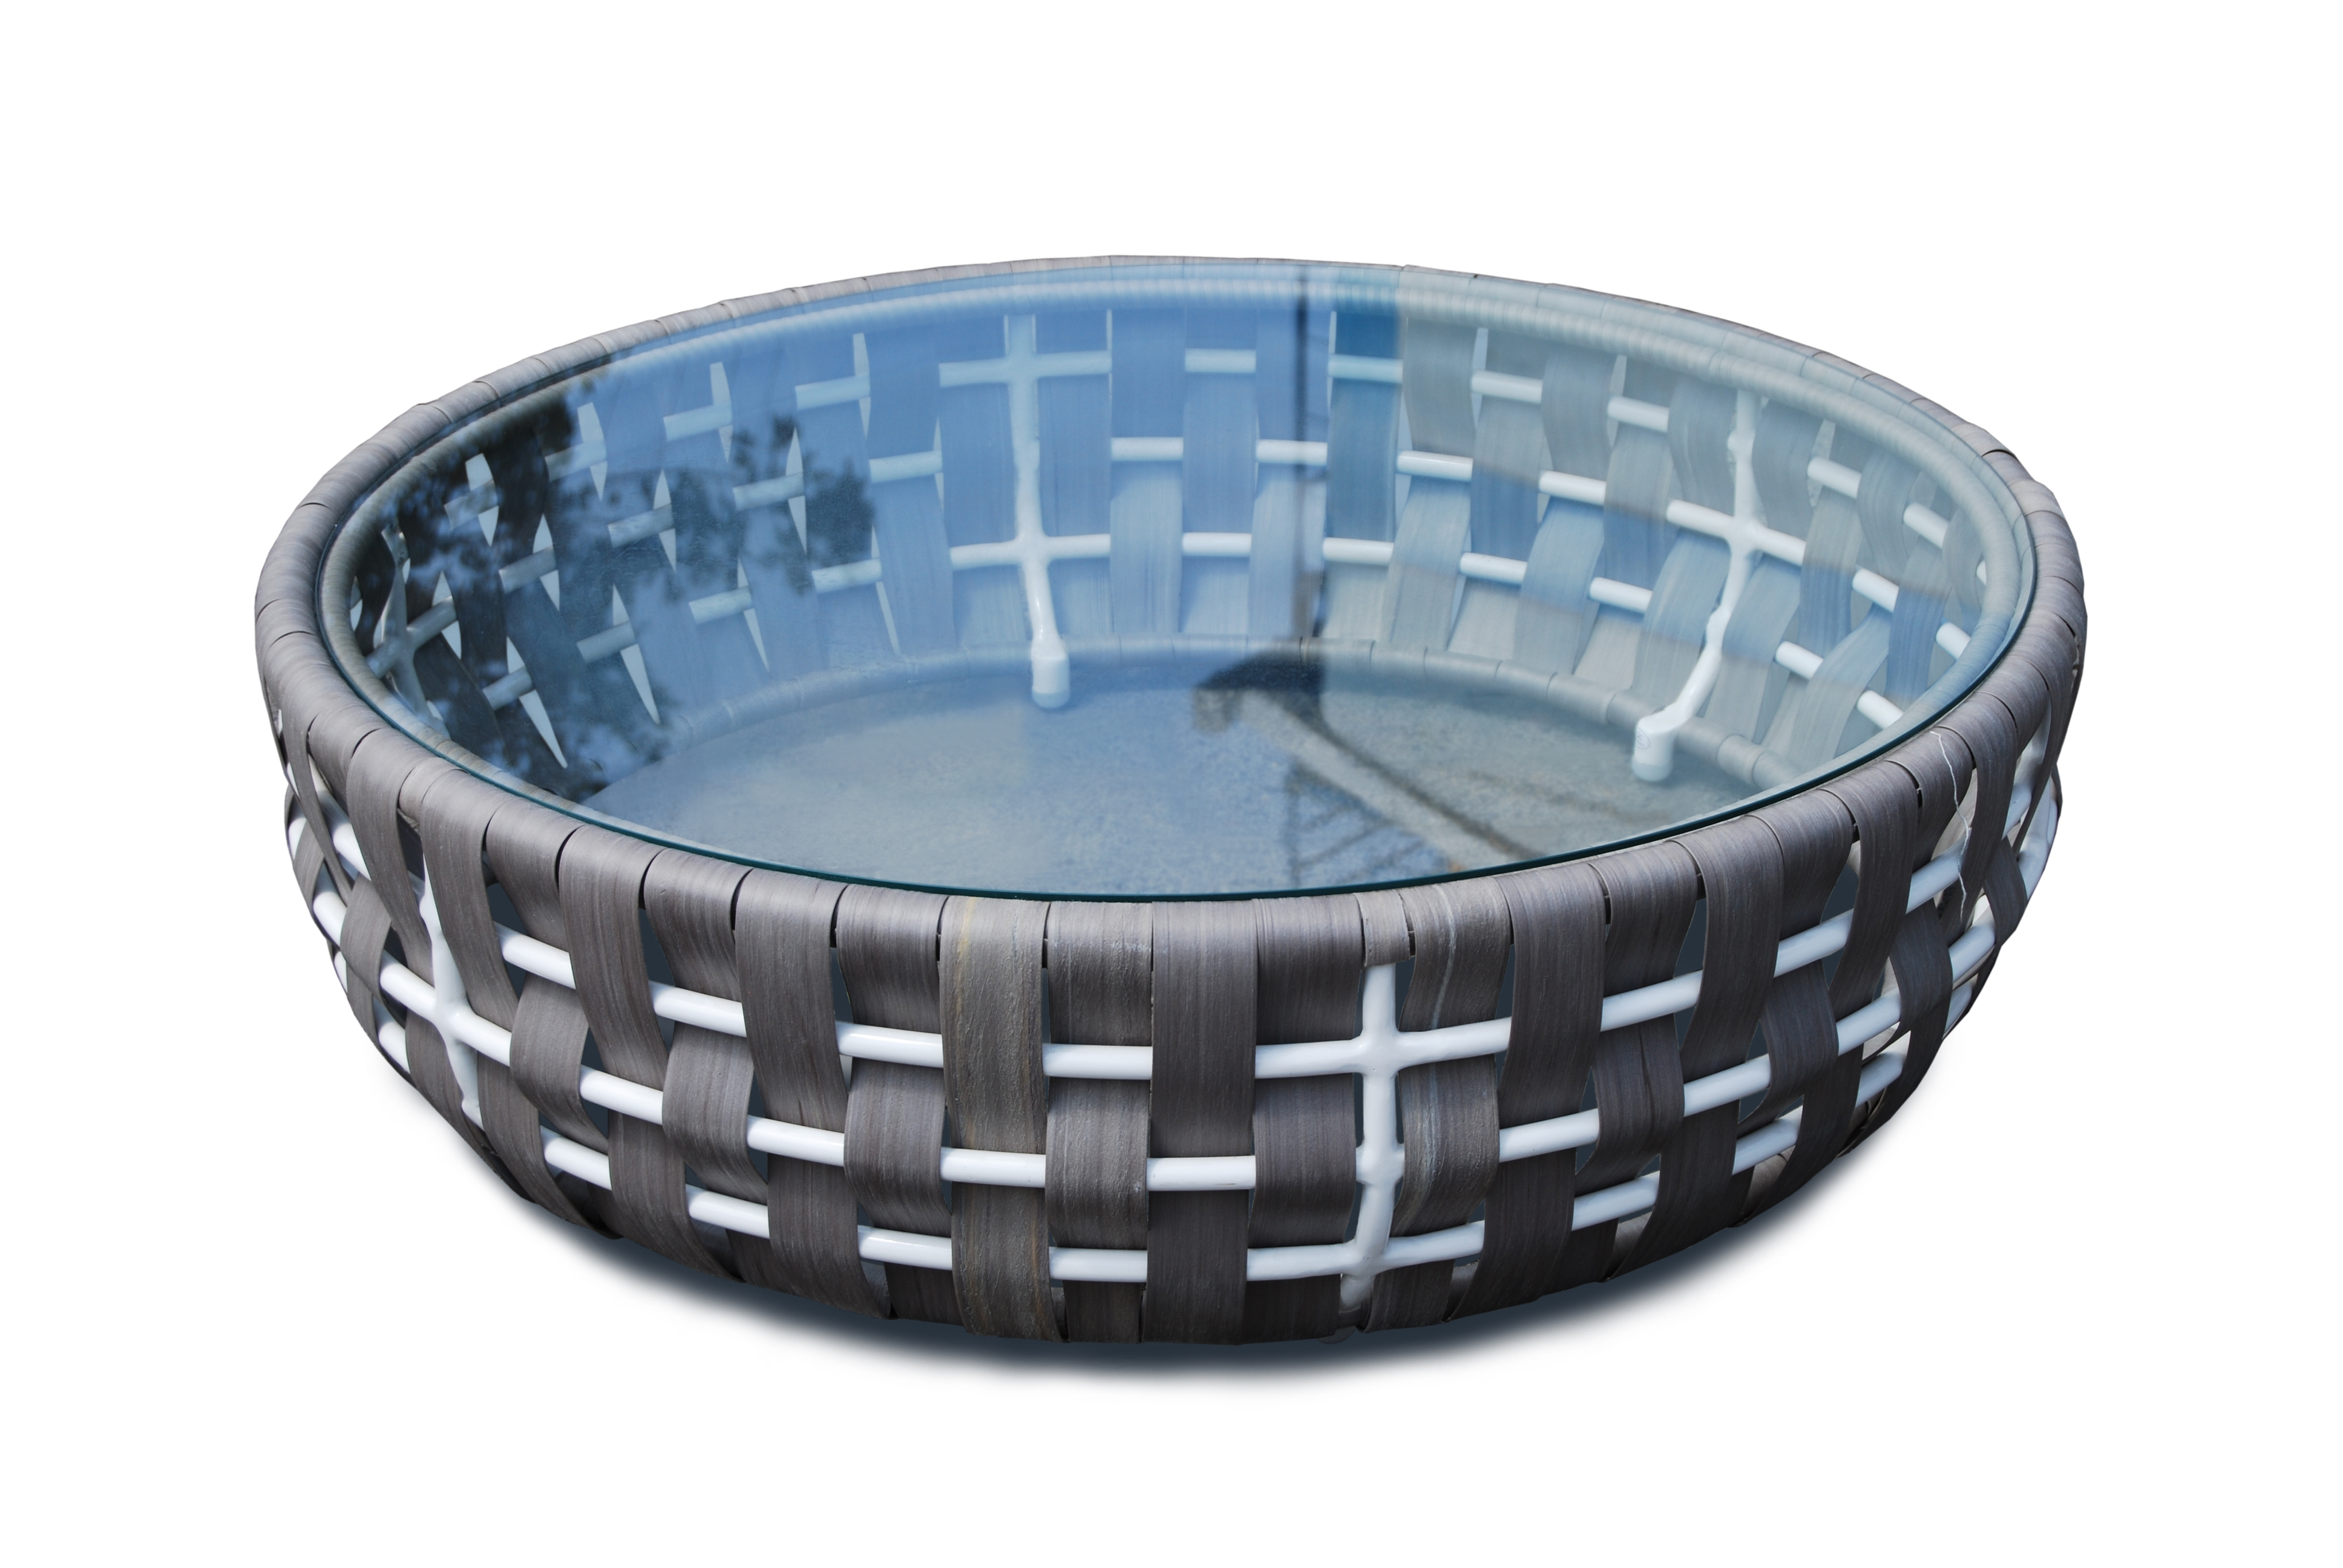 https://www.firstfurniture.co.uk/pub/media/catalog/product/s/k/skyline-design-strips-round-coffee-table.jpg